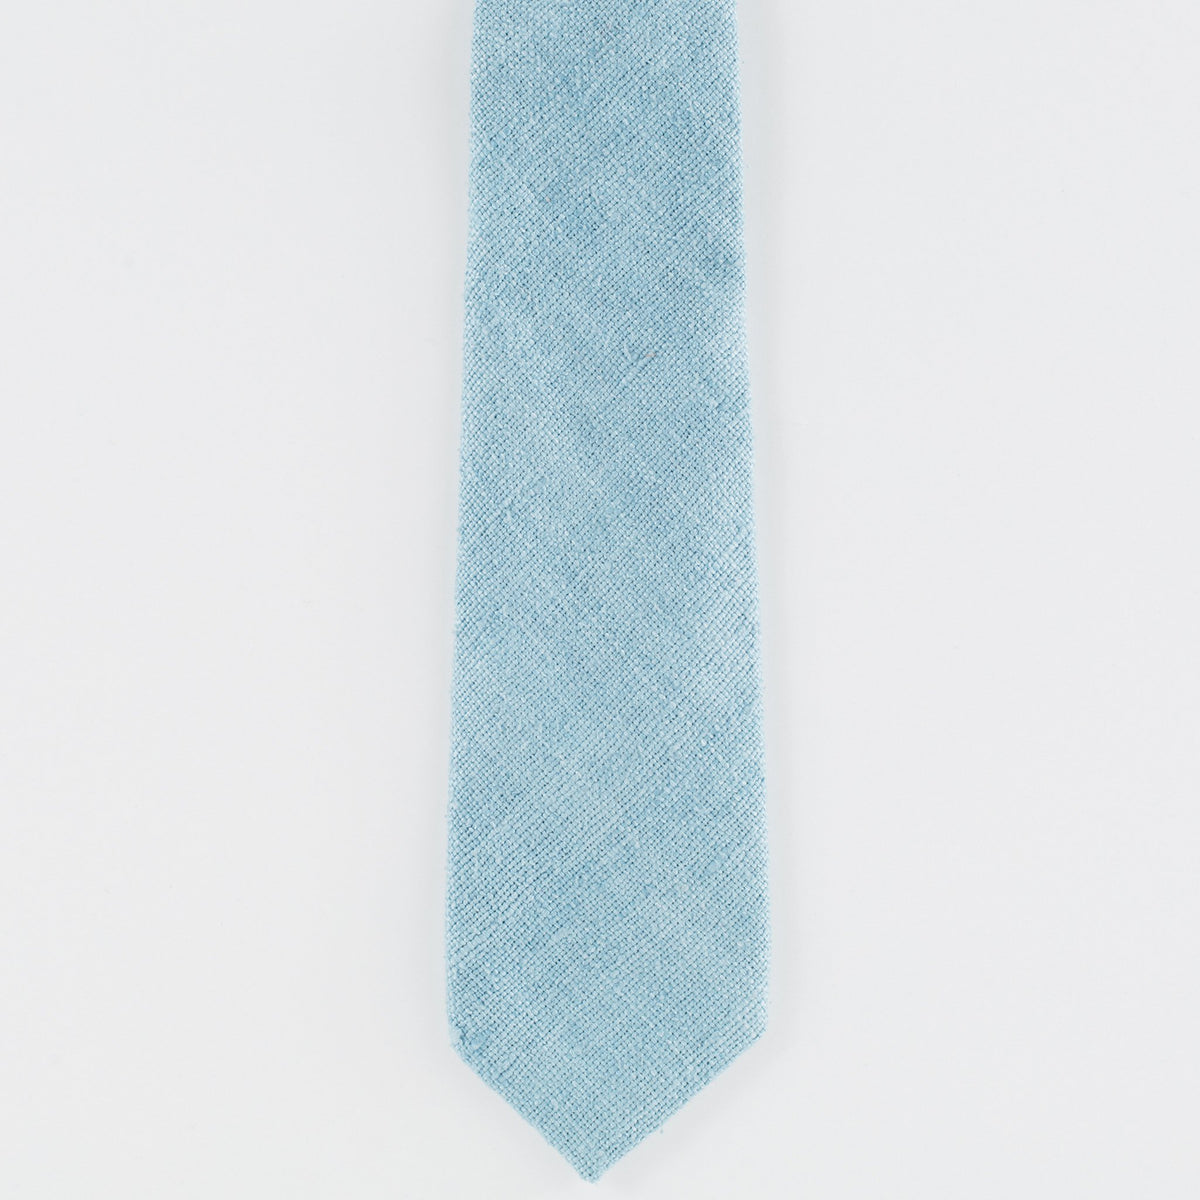 Raw Silk Light Blue Tie